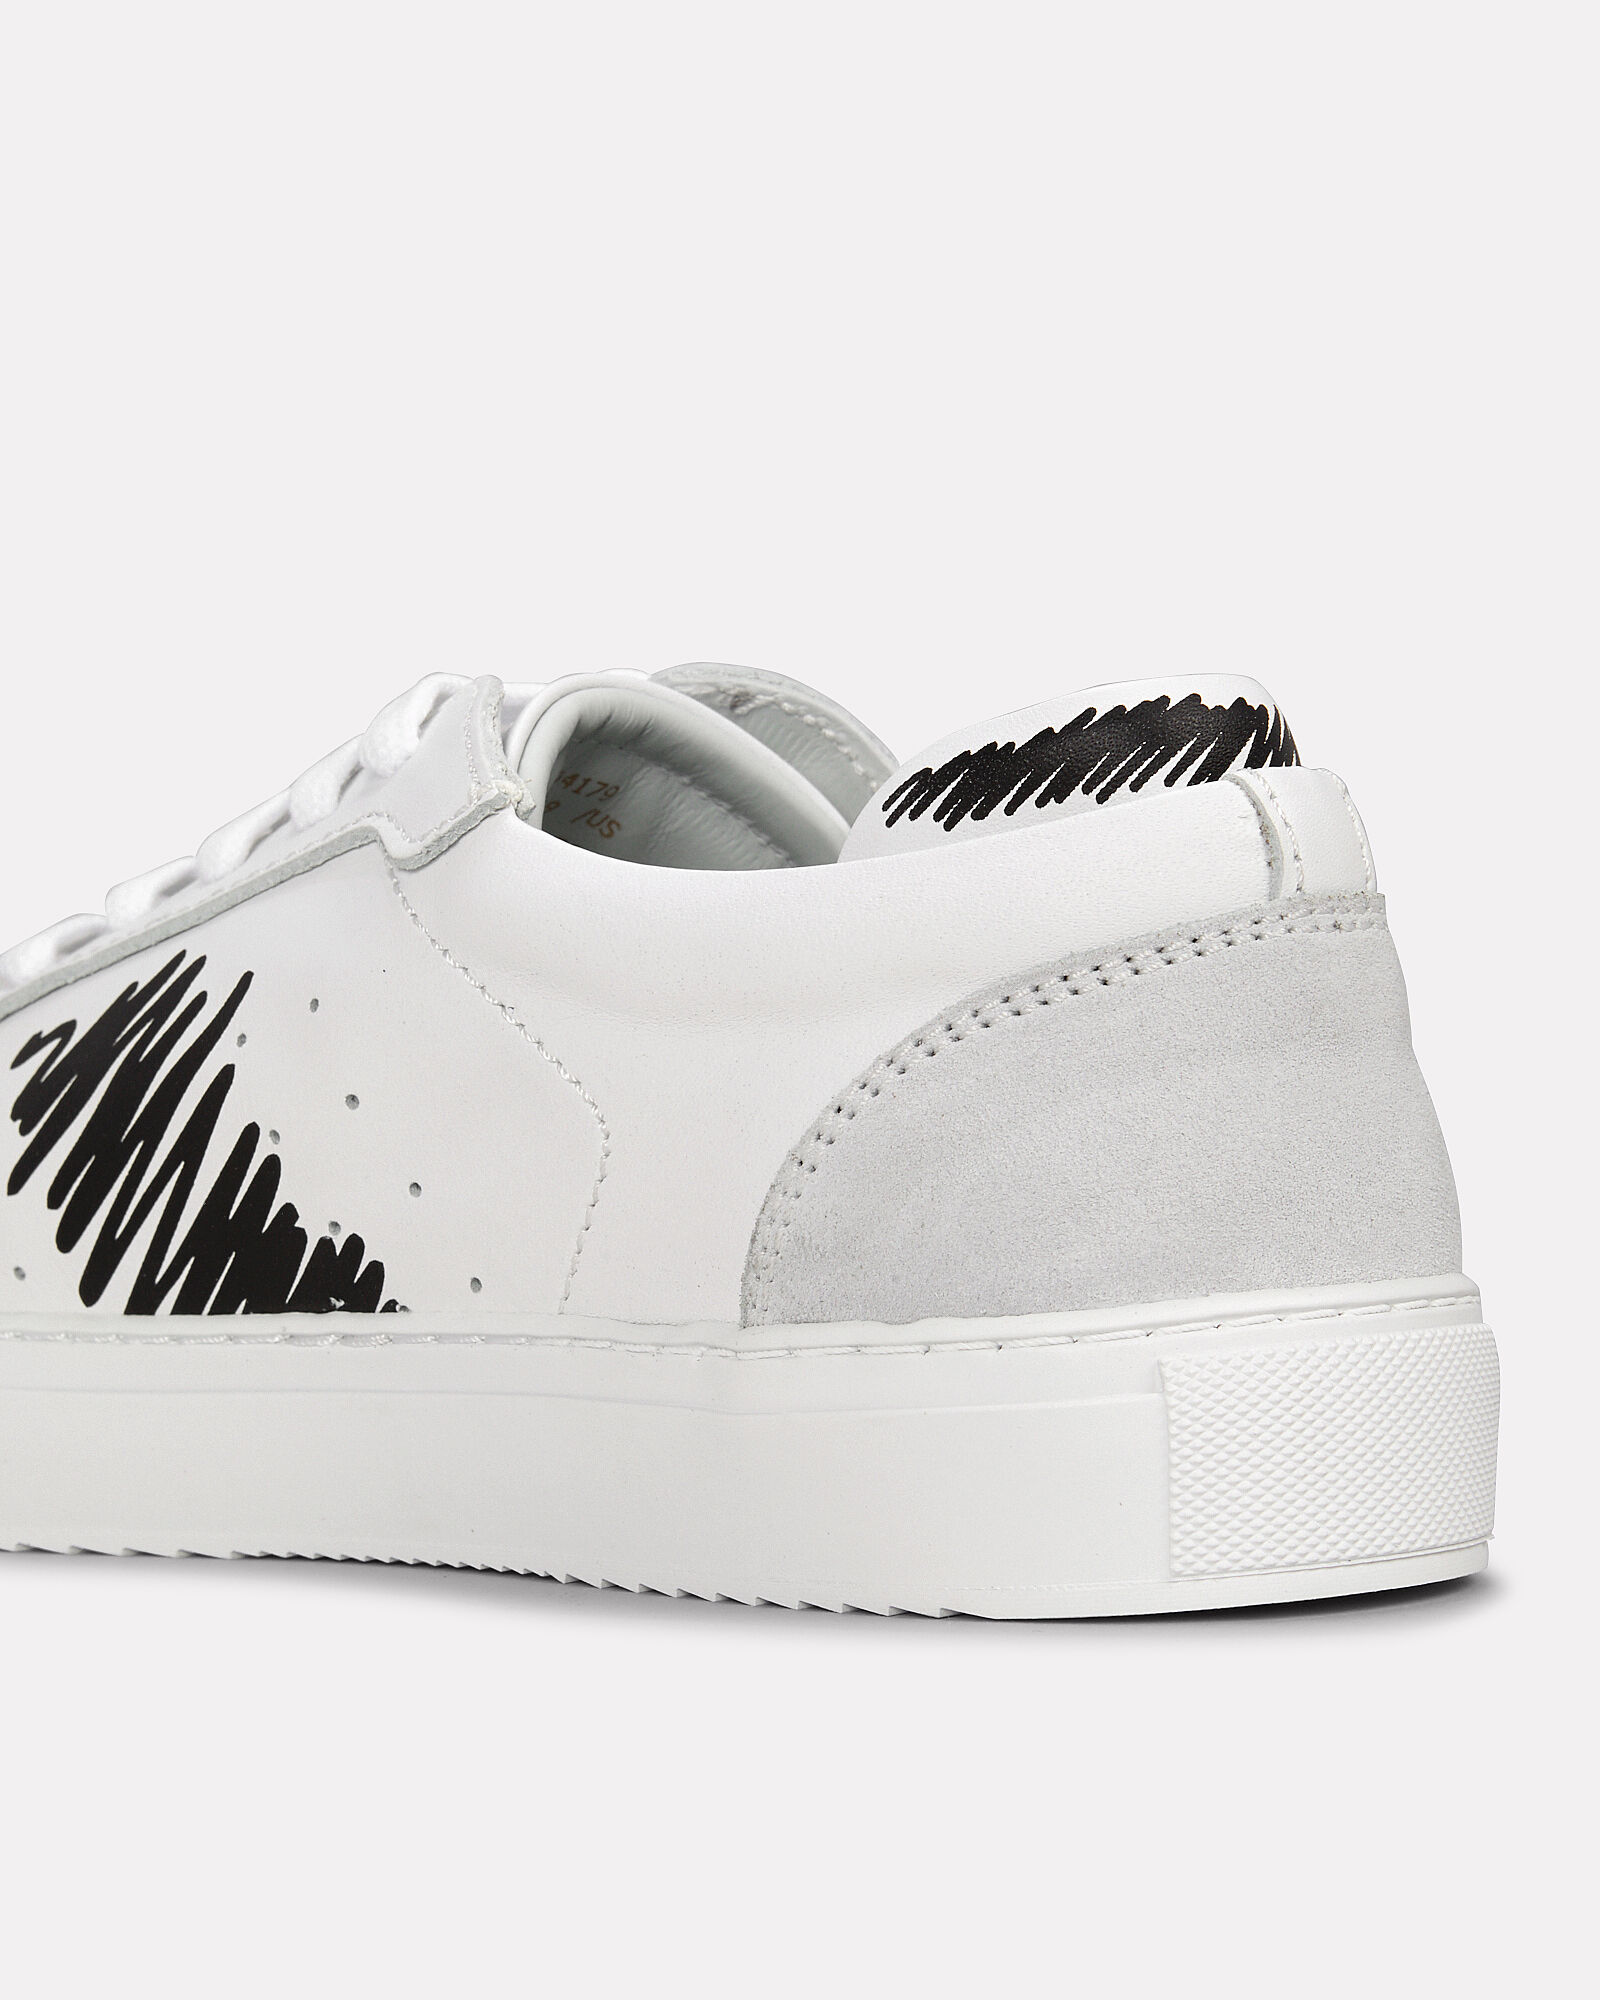 Dunk Scribble Leather Sneakers, WHITE/BLACK, hi-res